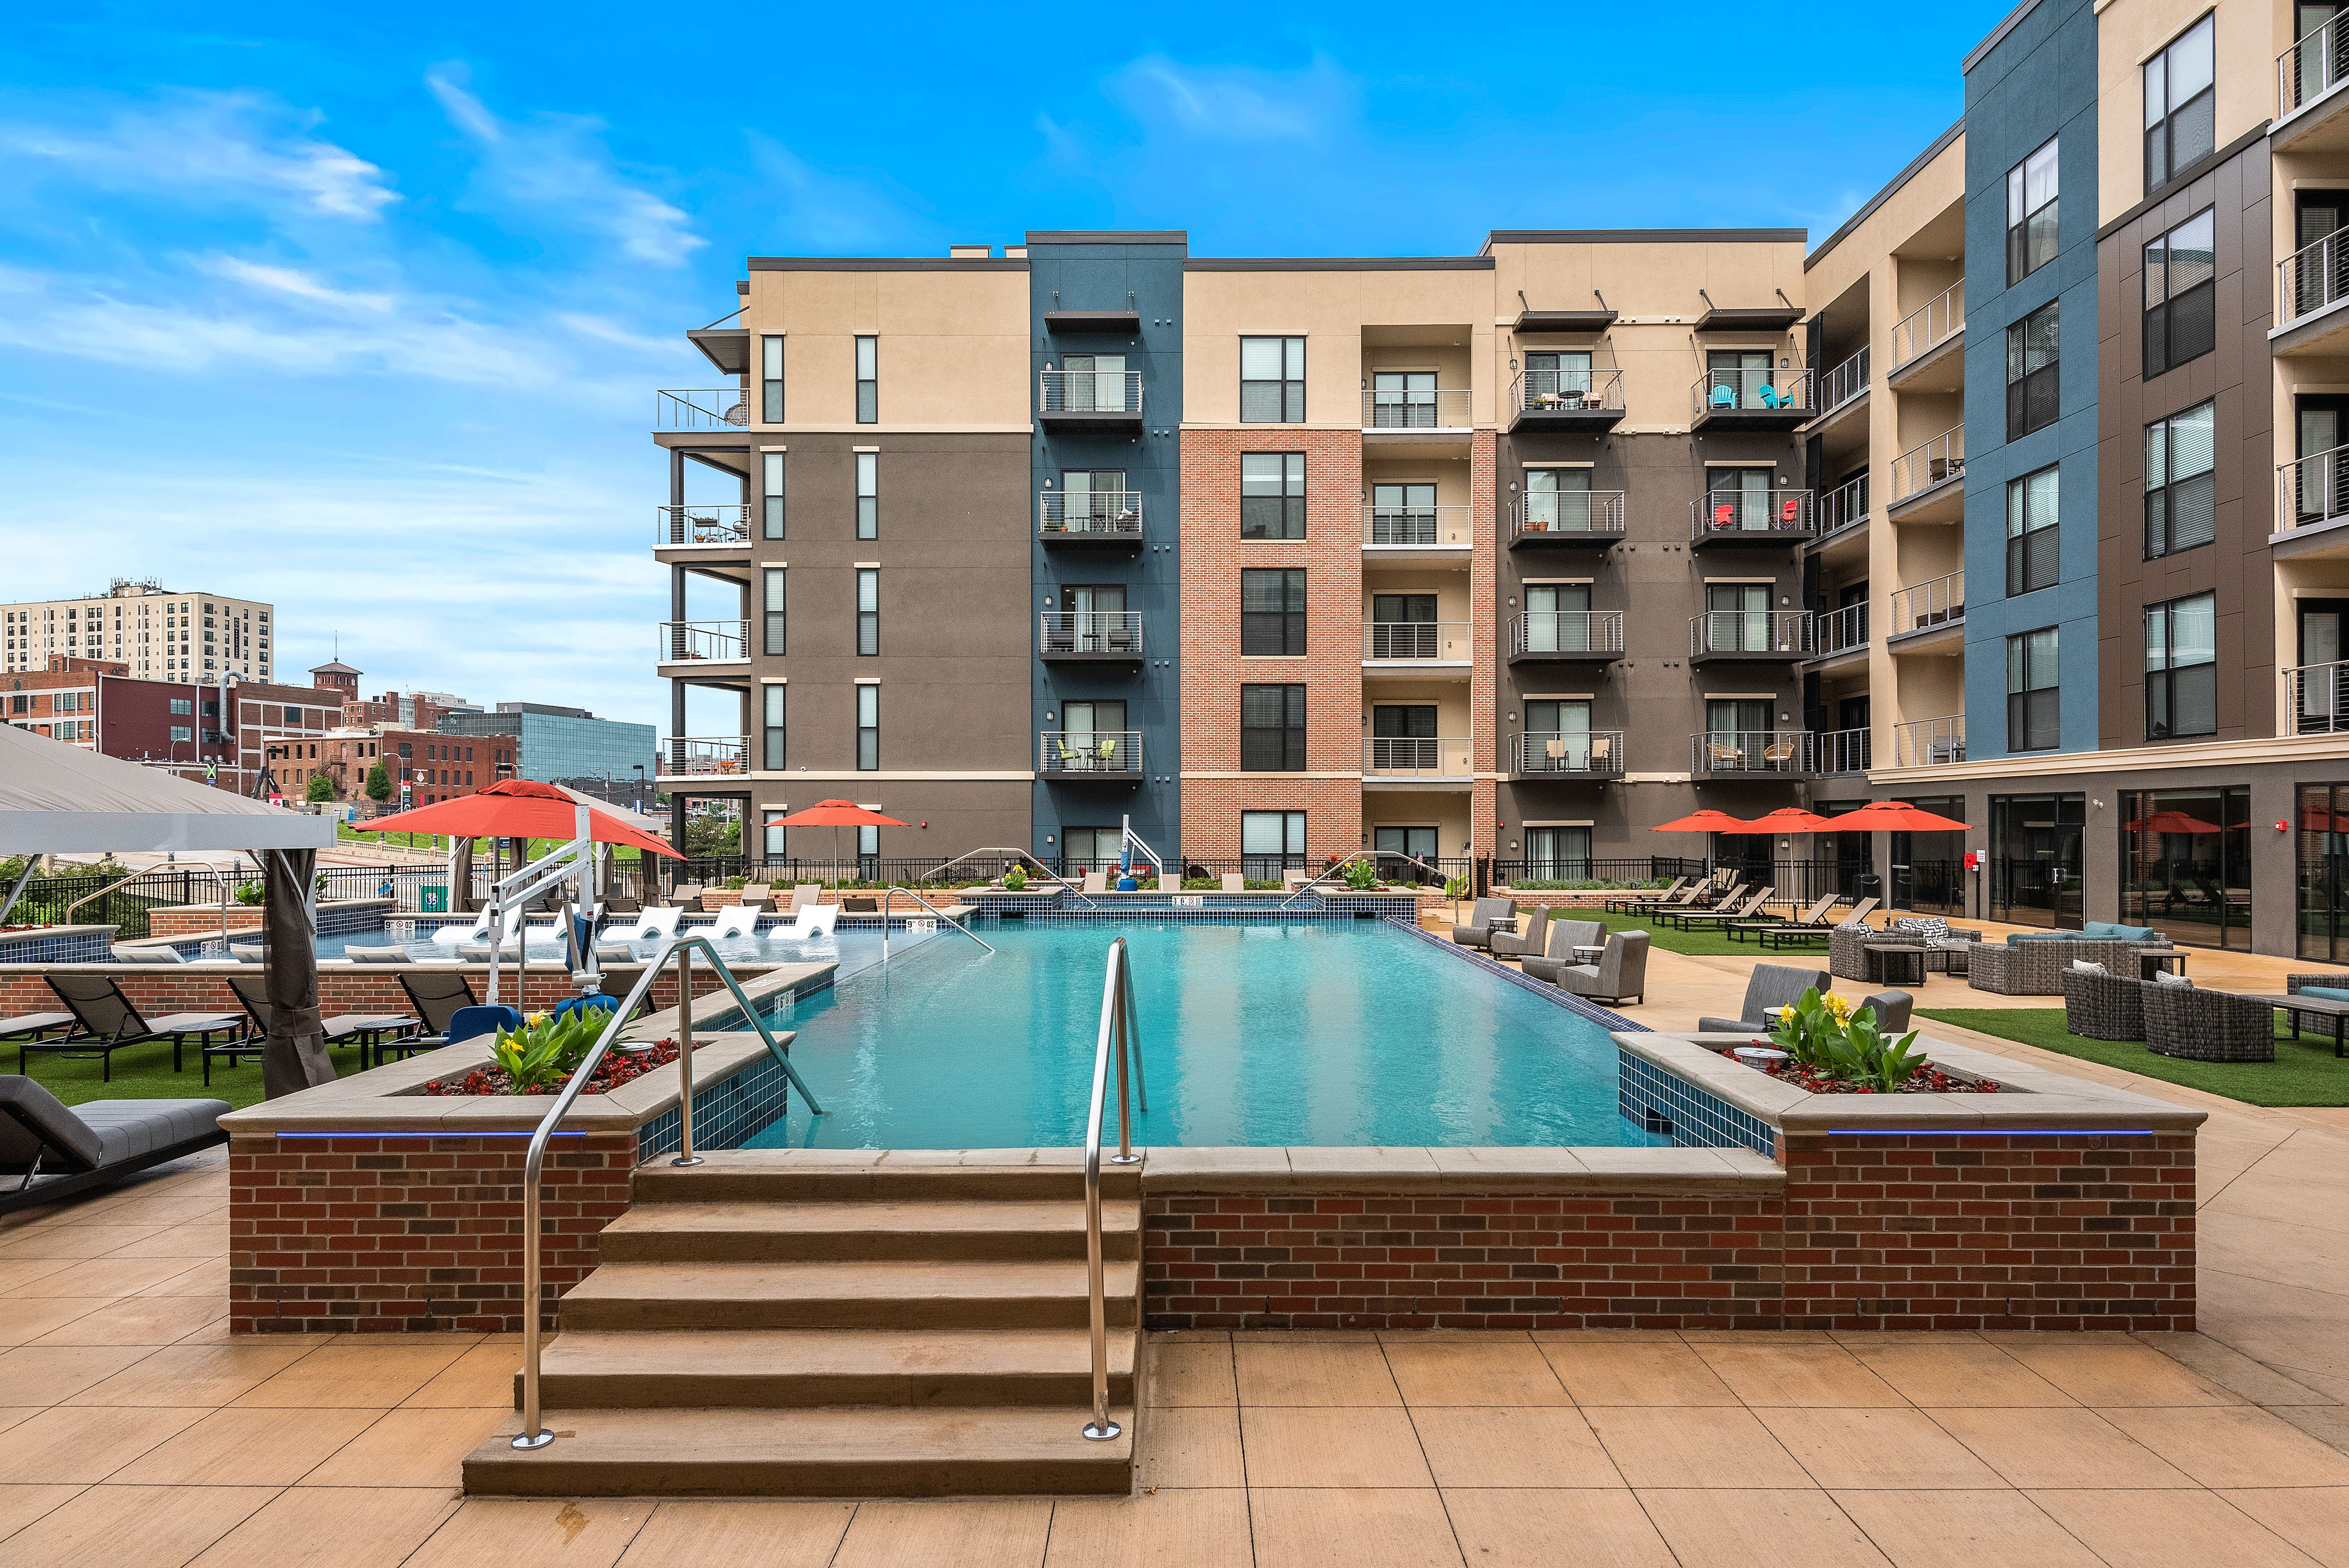 531 Grand Amenities Nspjarchitects Kansascity Kcmo Multifamily Luxuryapartments Apartments Pool Pooldeck Downt Building Design Architect Architecture